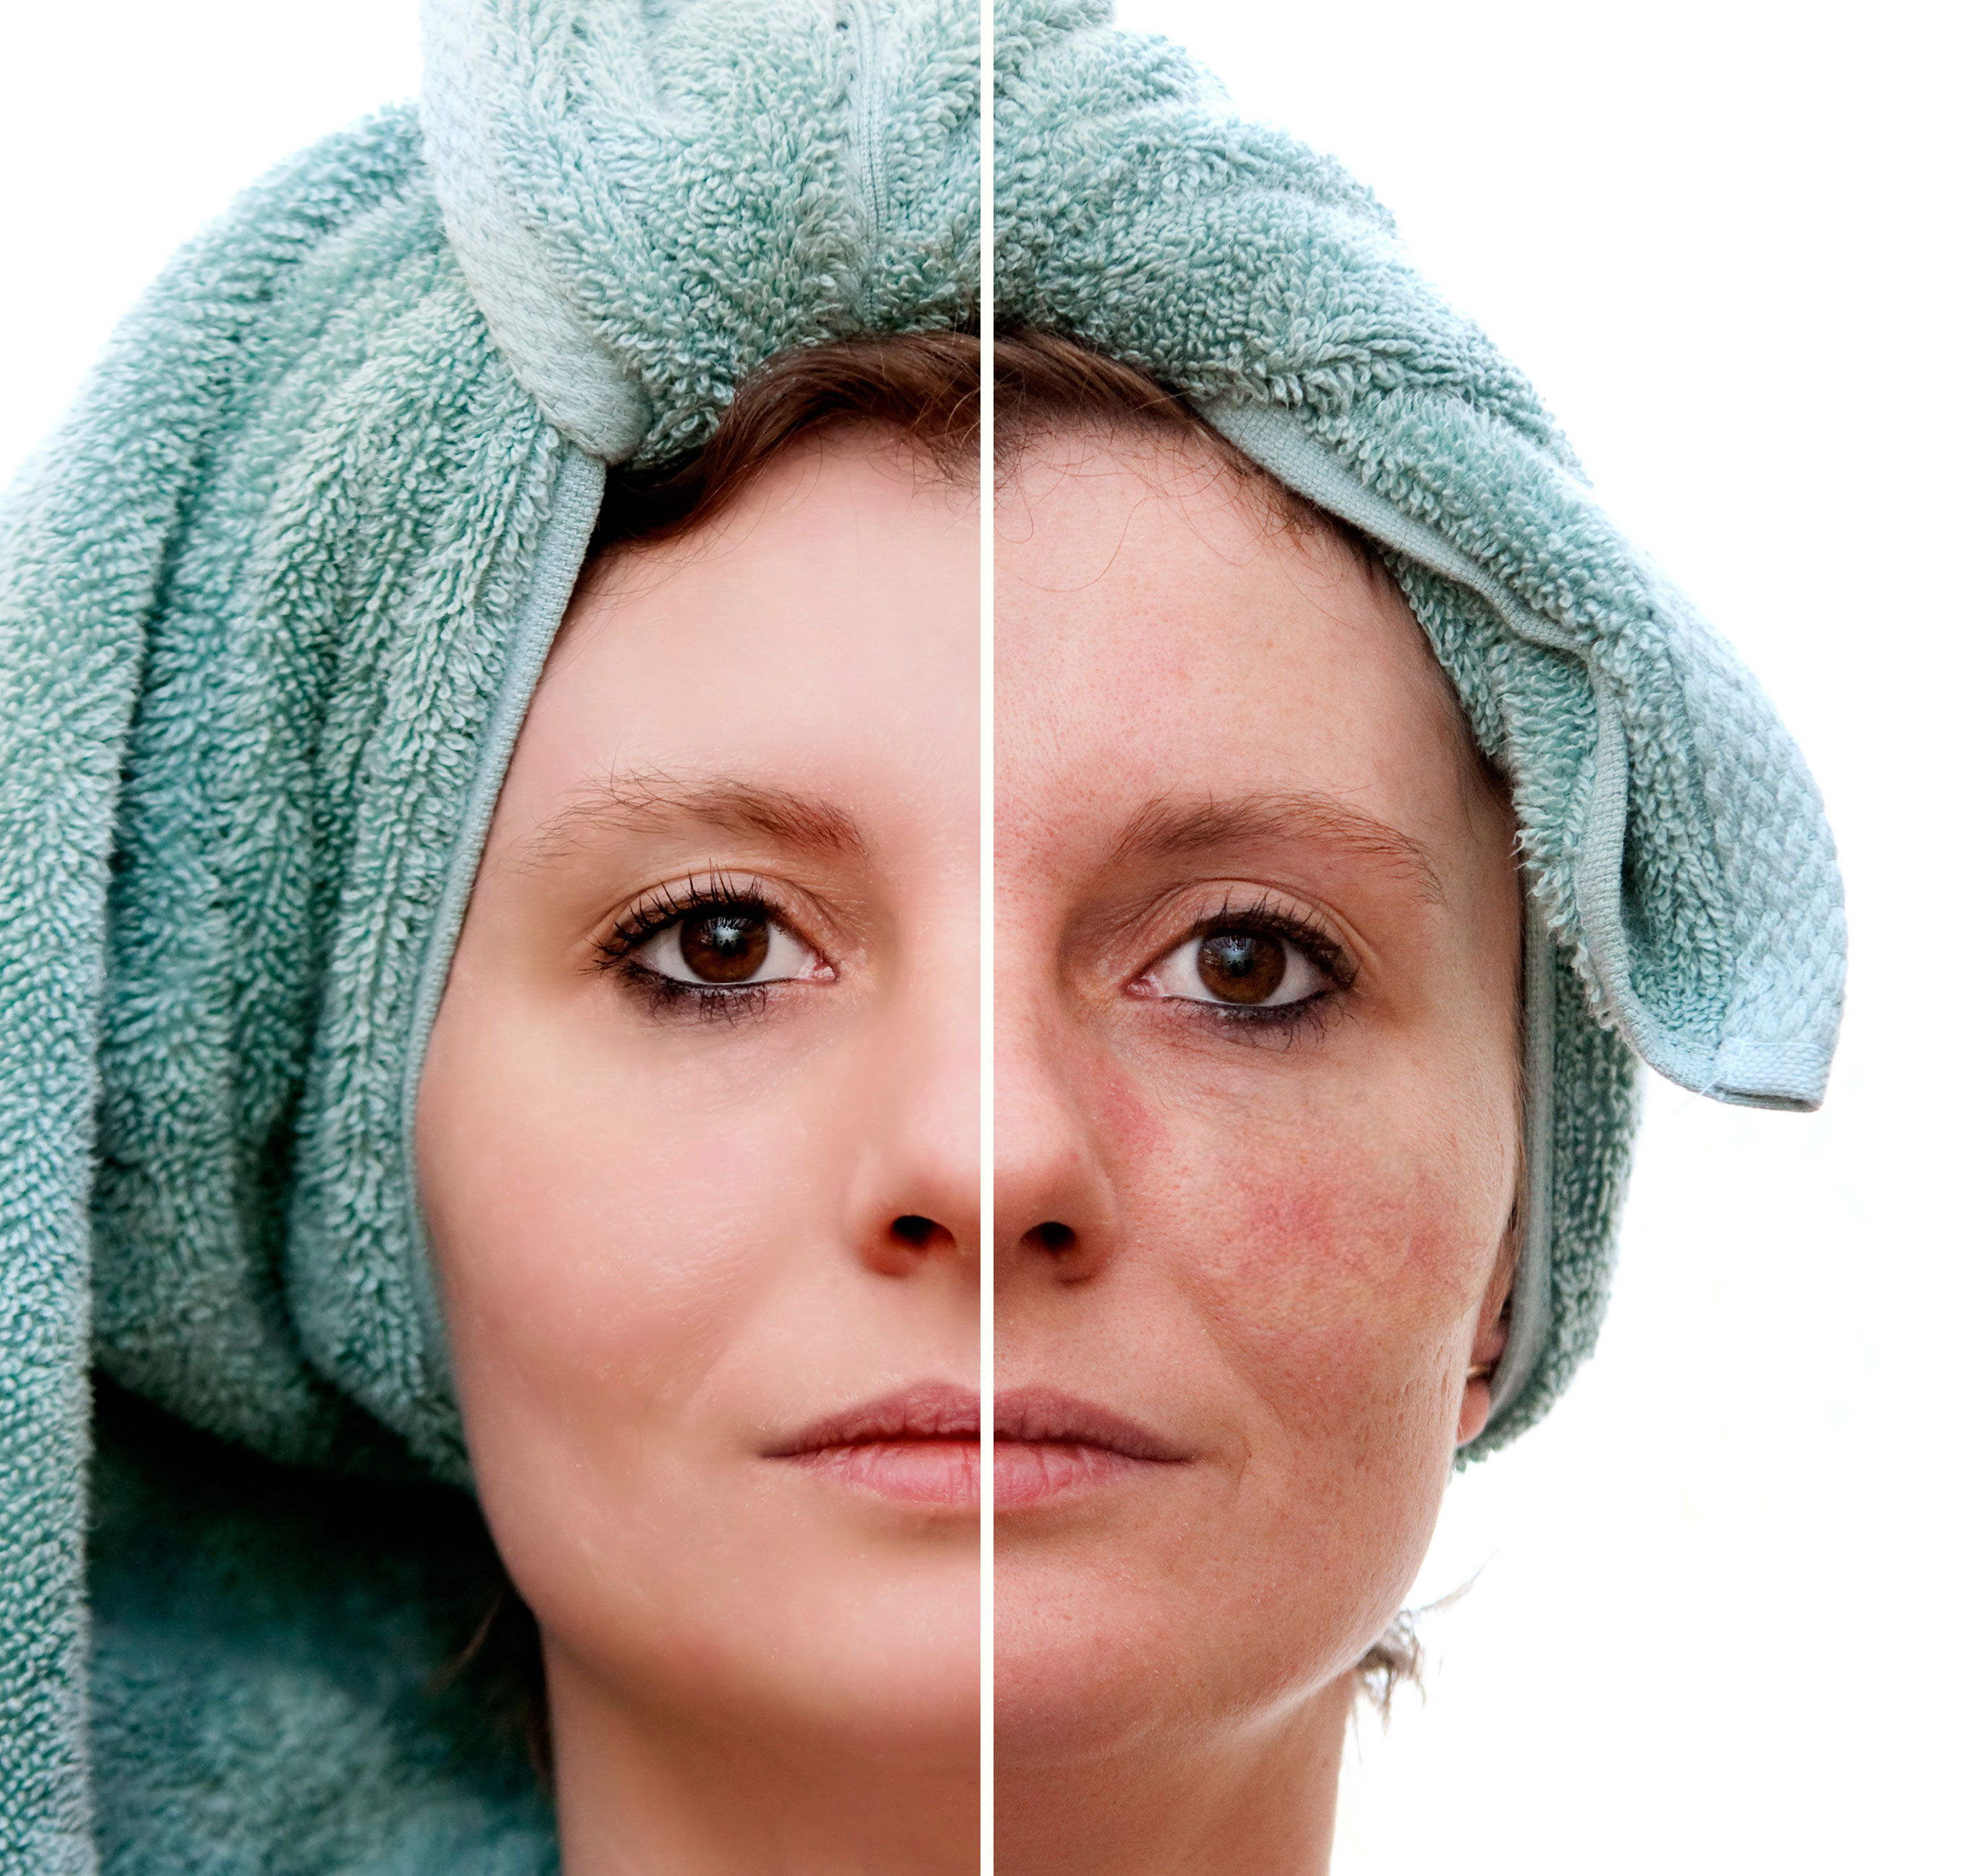 facial spider veins dr mark zuzga